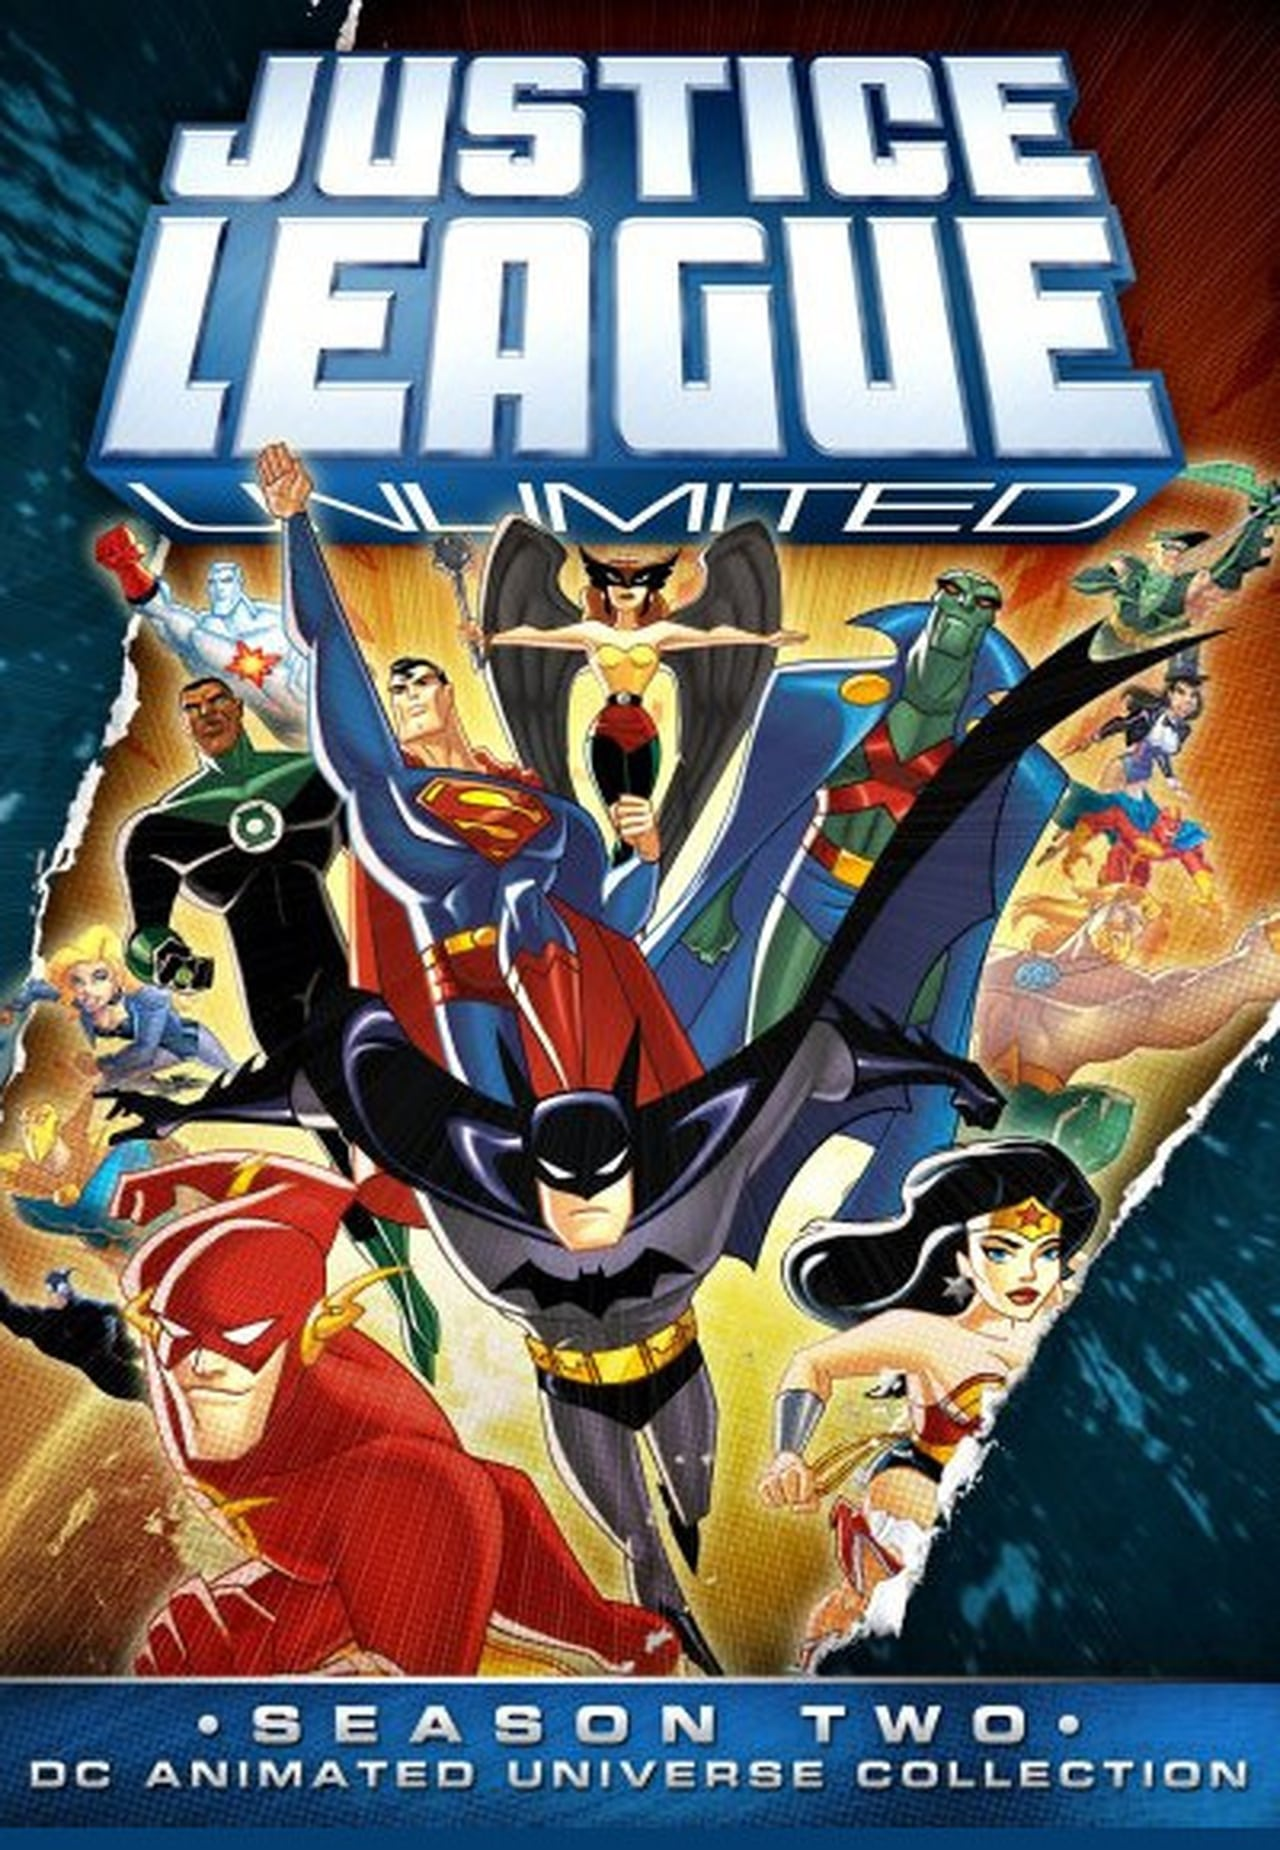 Putlocker Justice League Season 4 (2005)